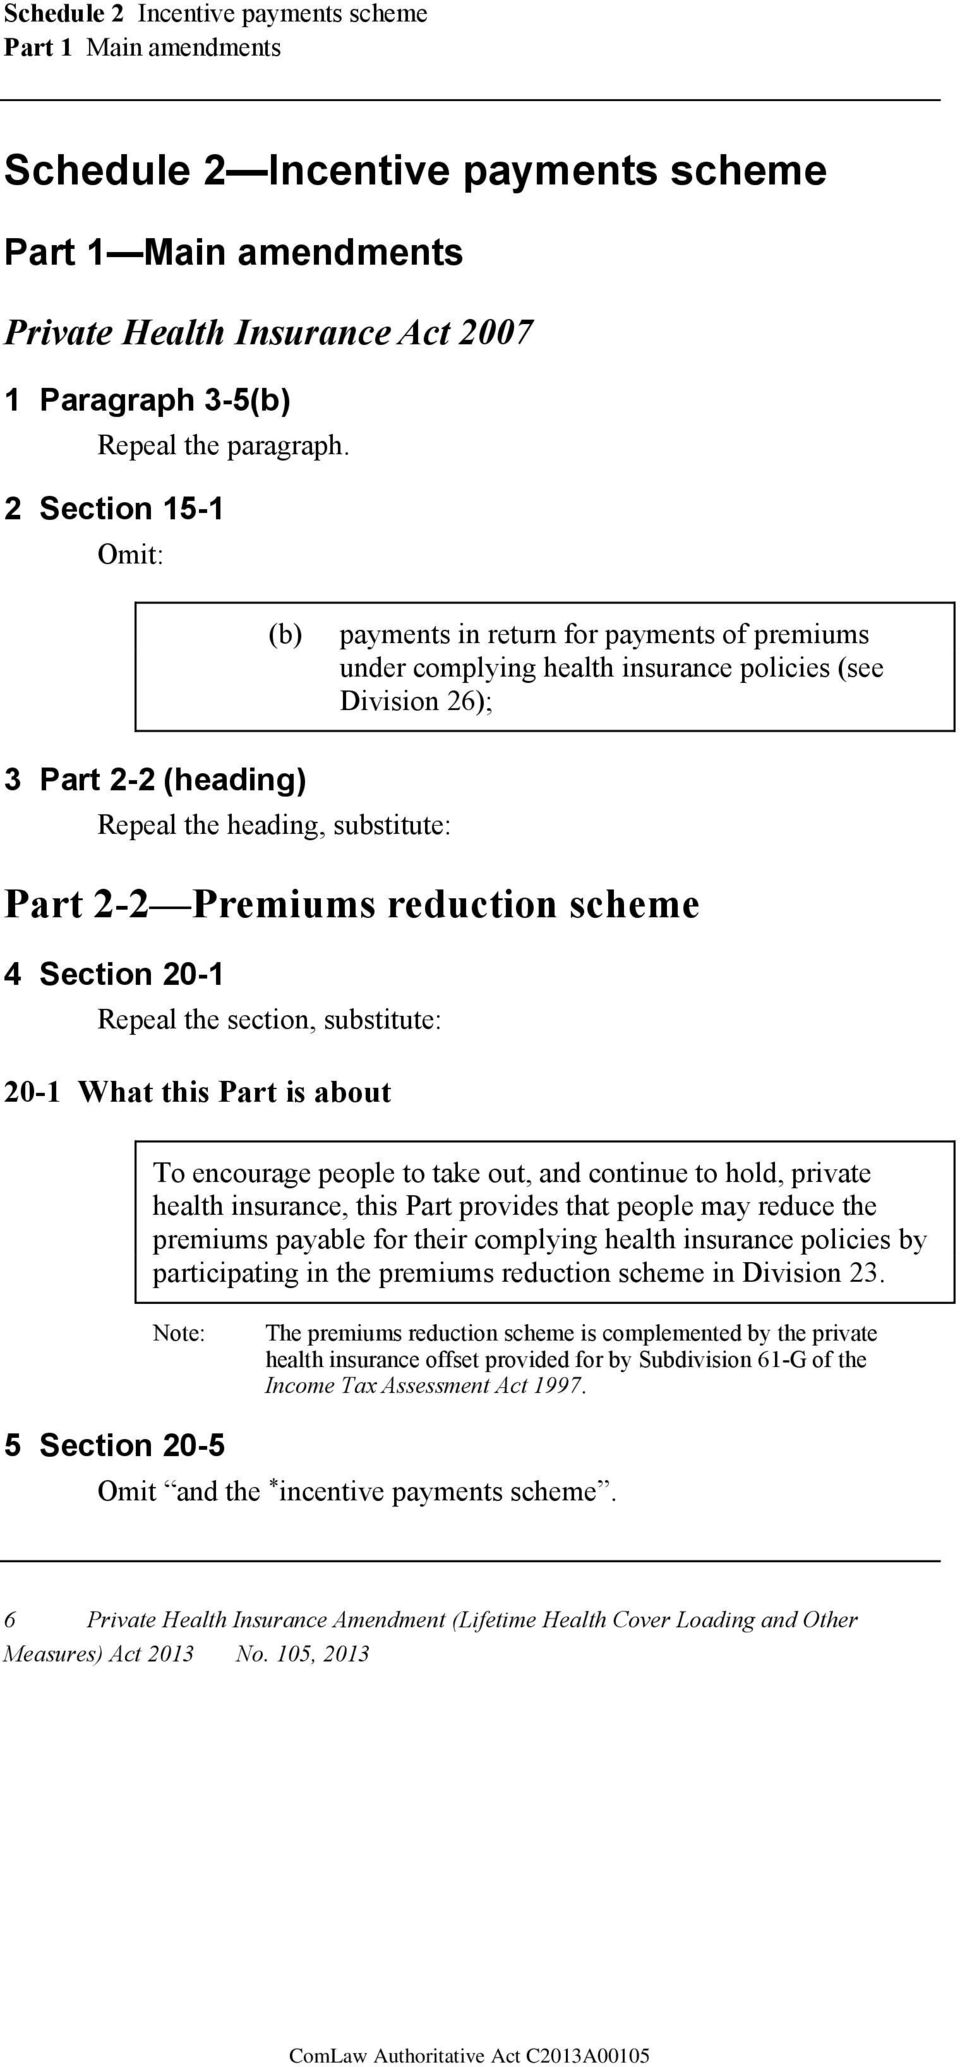 Premiums reduction scheme 4 Section 20-1 Repeal the section, substitute: 20-1 What this Part is about To encourage people to take out, and continue to hold, private health insurance, this Part